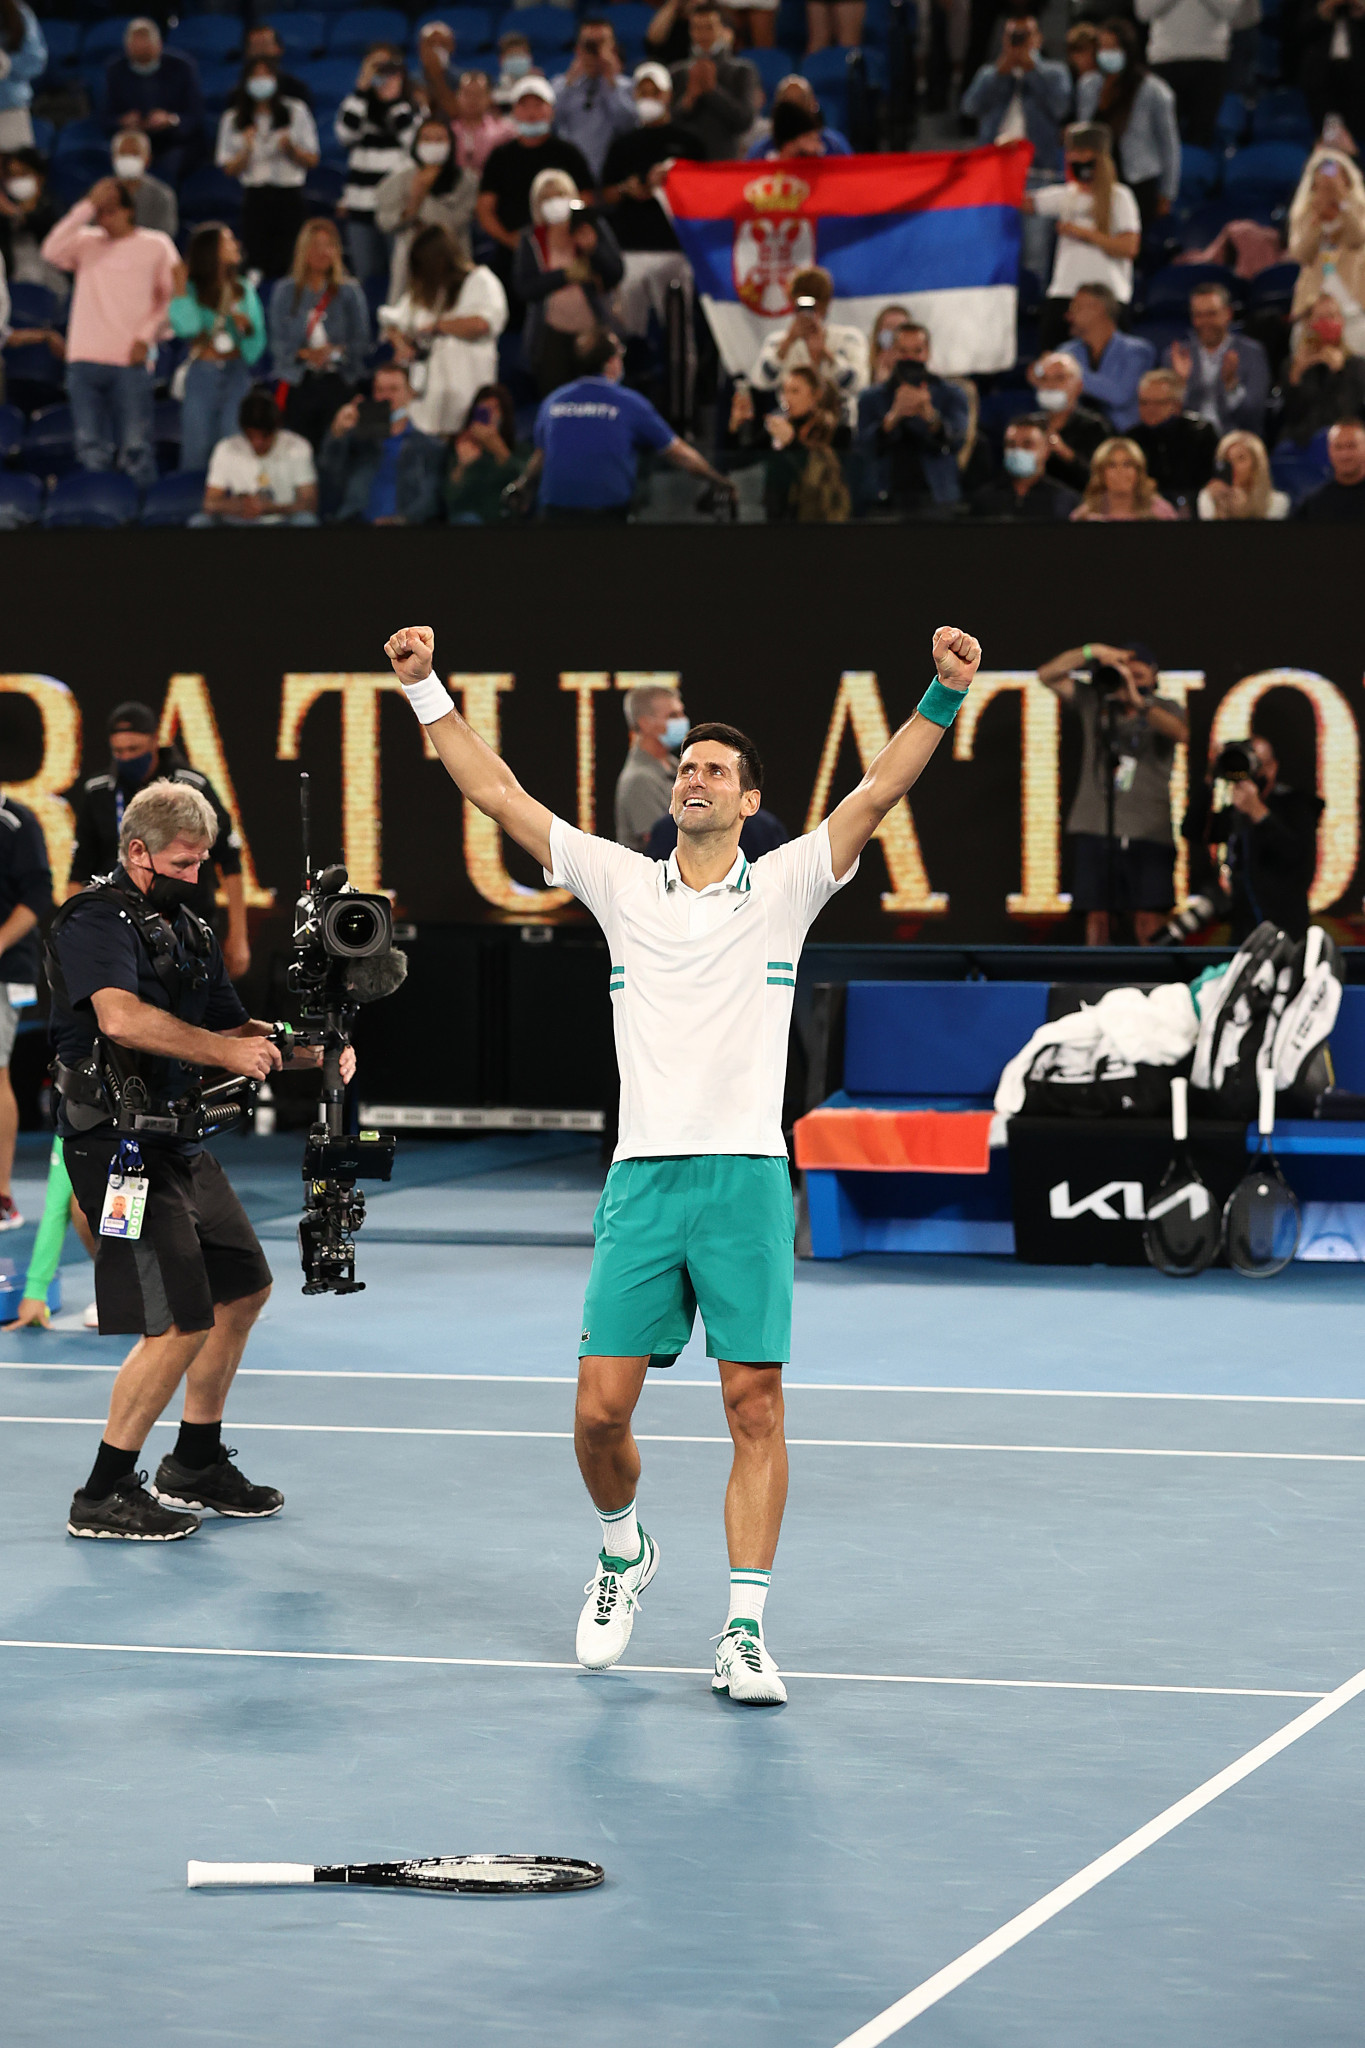 Djokovic retains Australian Open title to increase Grand Slam tally to 18